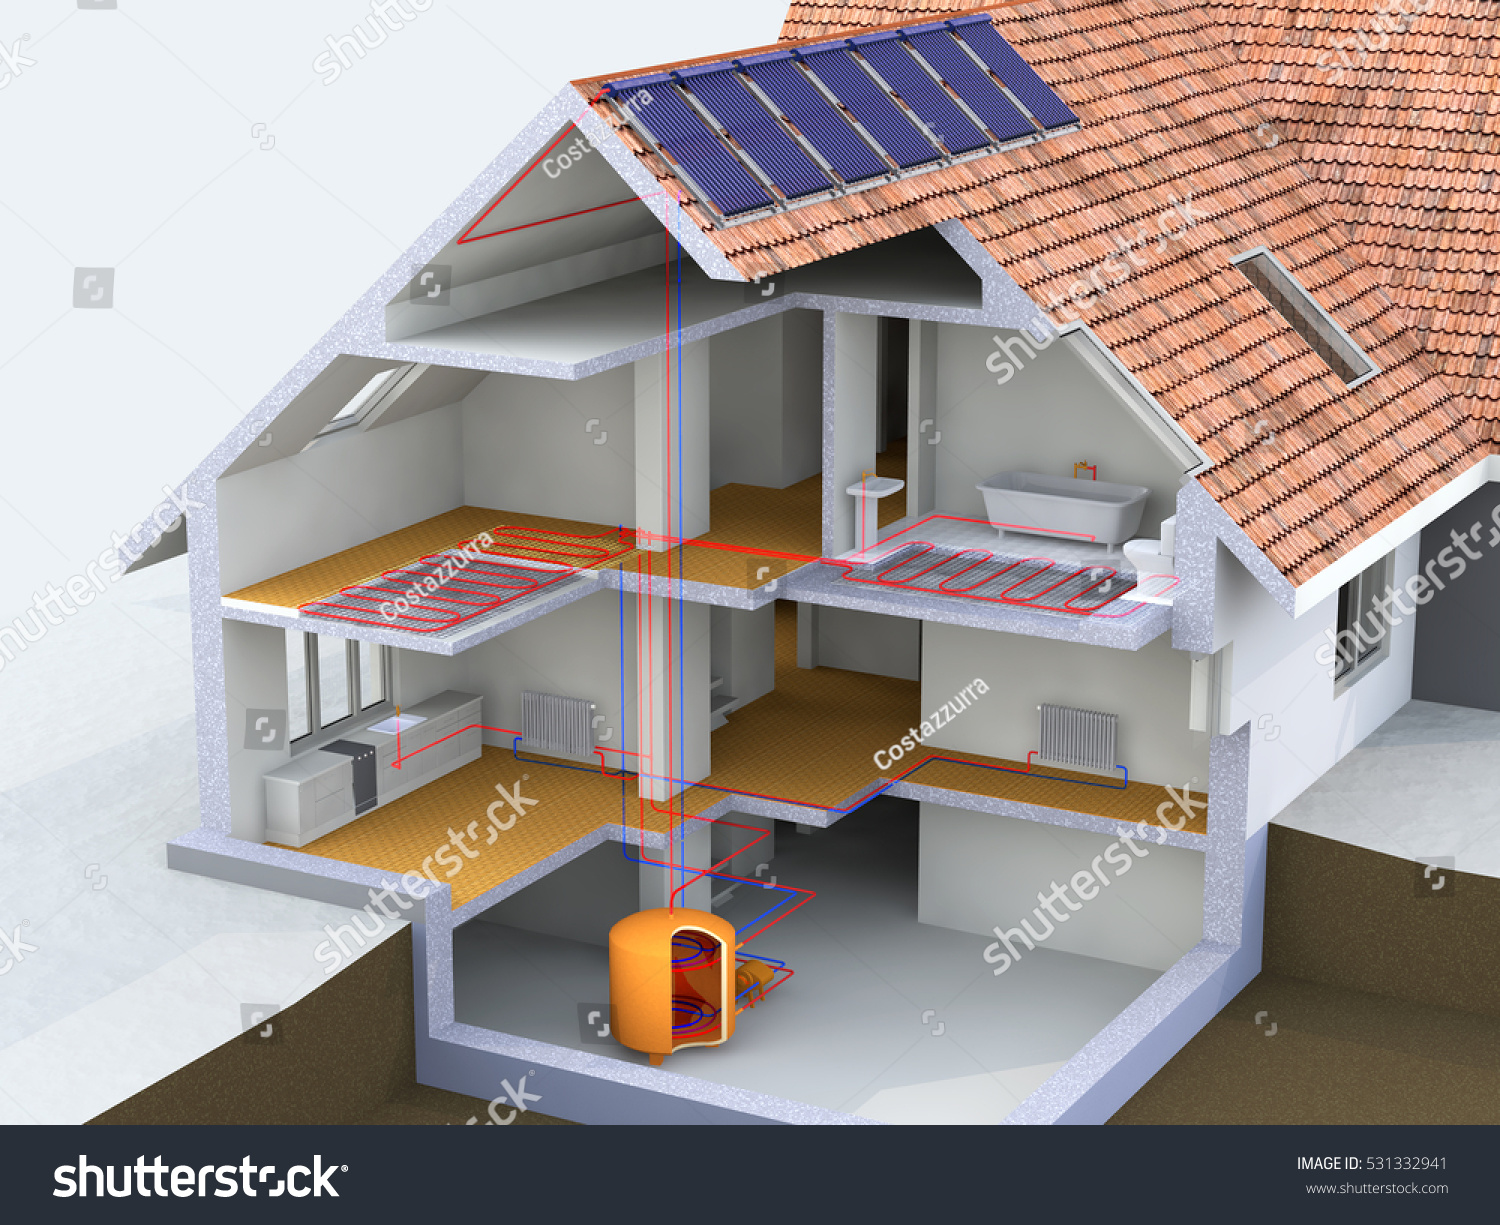 Alternative heated house solar panels heating stock for House heating systems